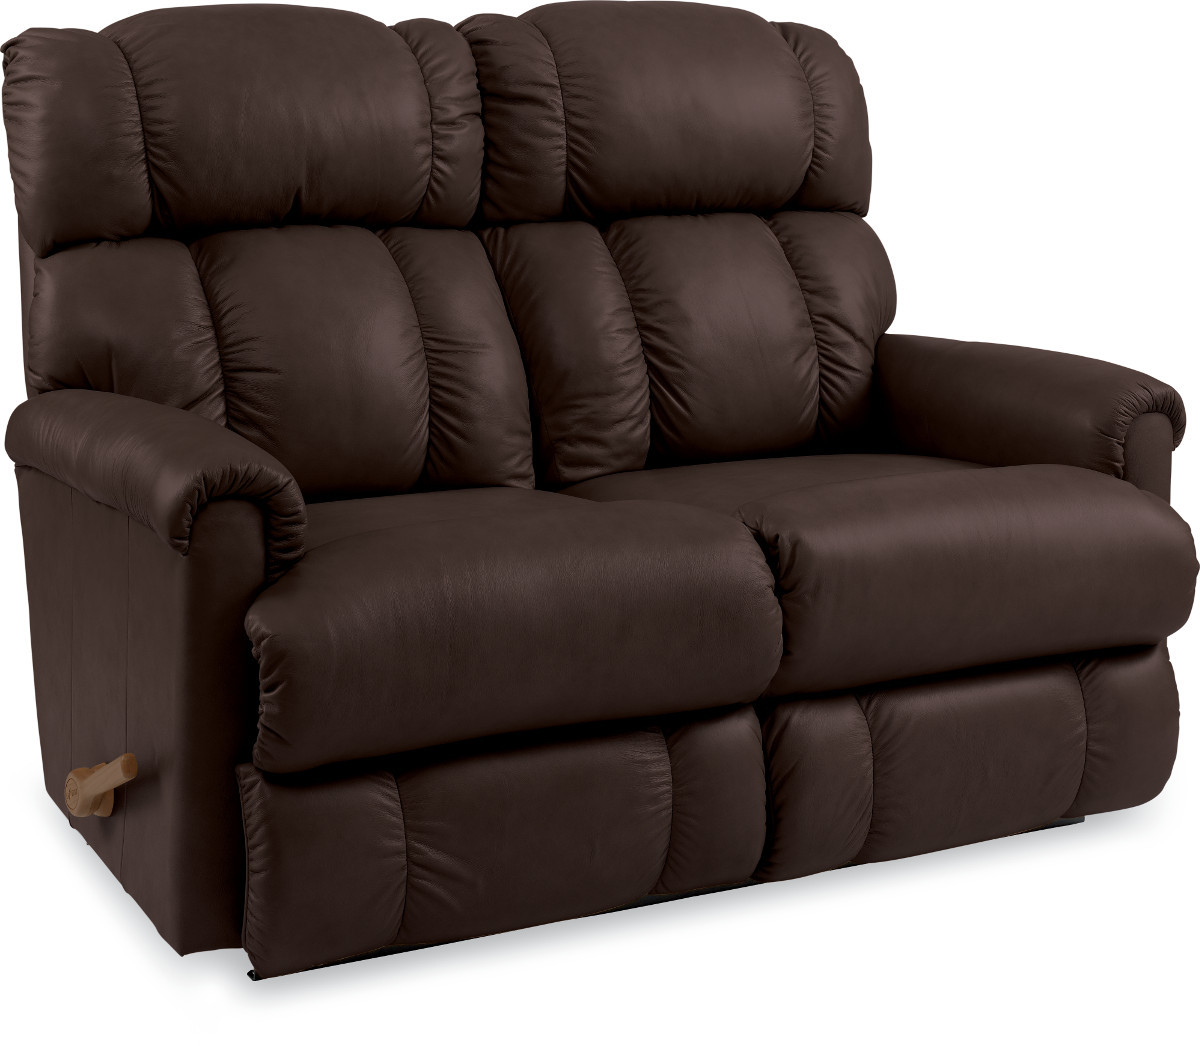 The Pinnacle Reclina Way Full Reclining Loveseat Sold At Rose Brothers Furniture Serving